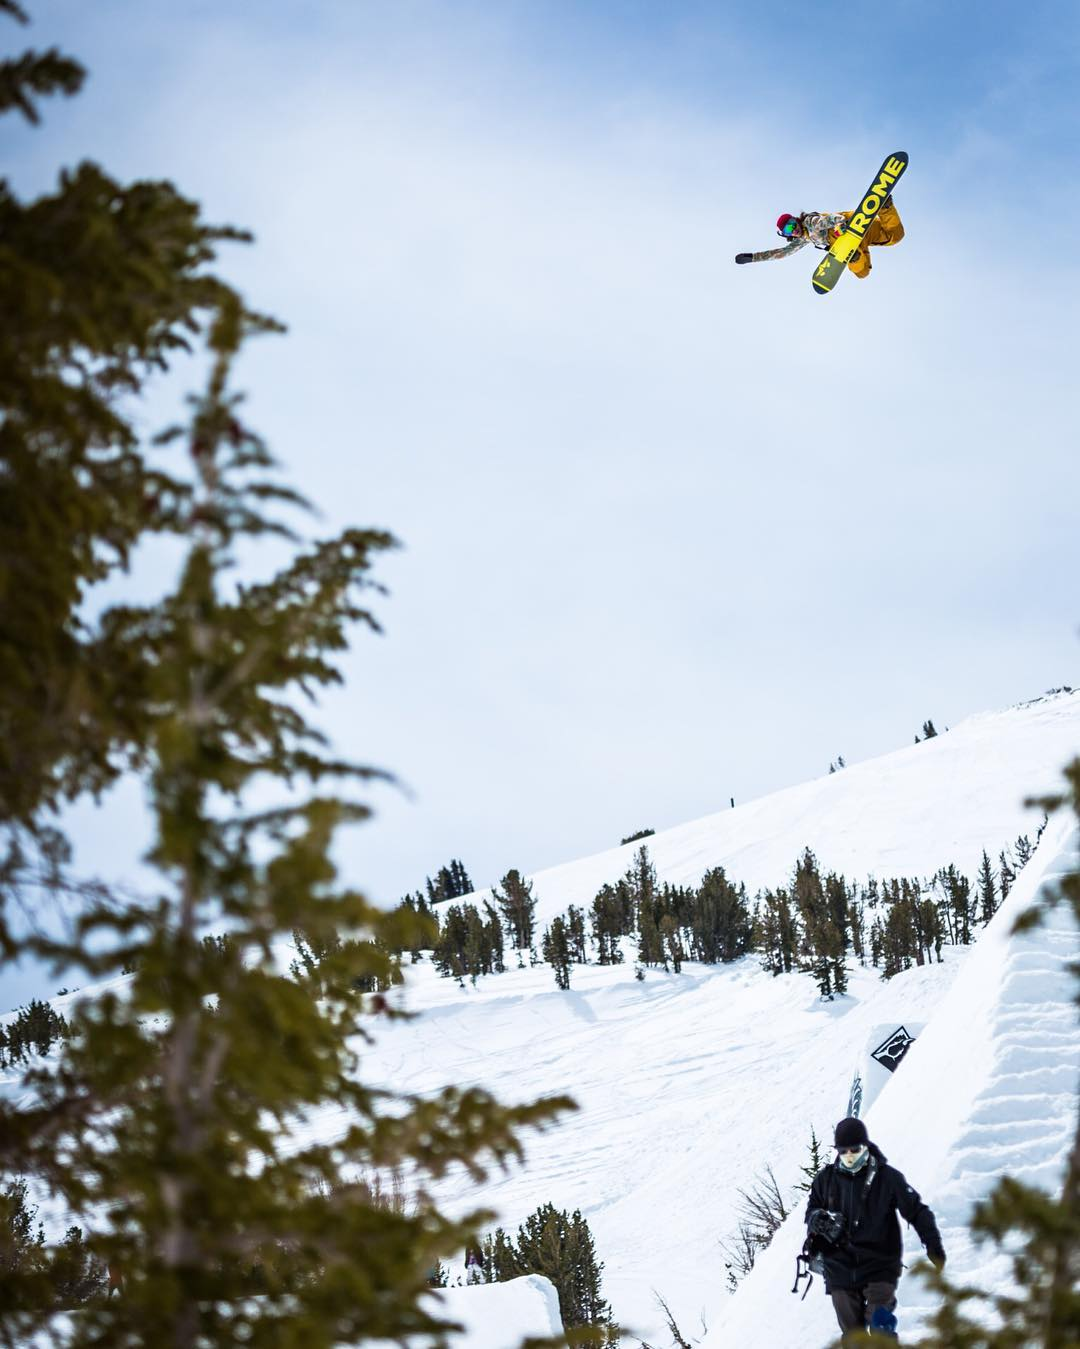 @aspenrainweaver going for the world record at #SuperPark20 up at @mammothmountain Day 3. The kids can boost!